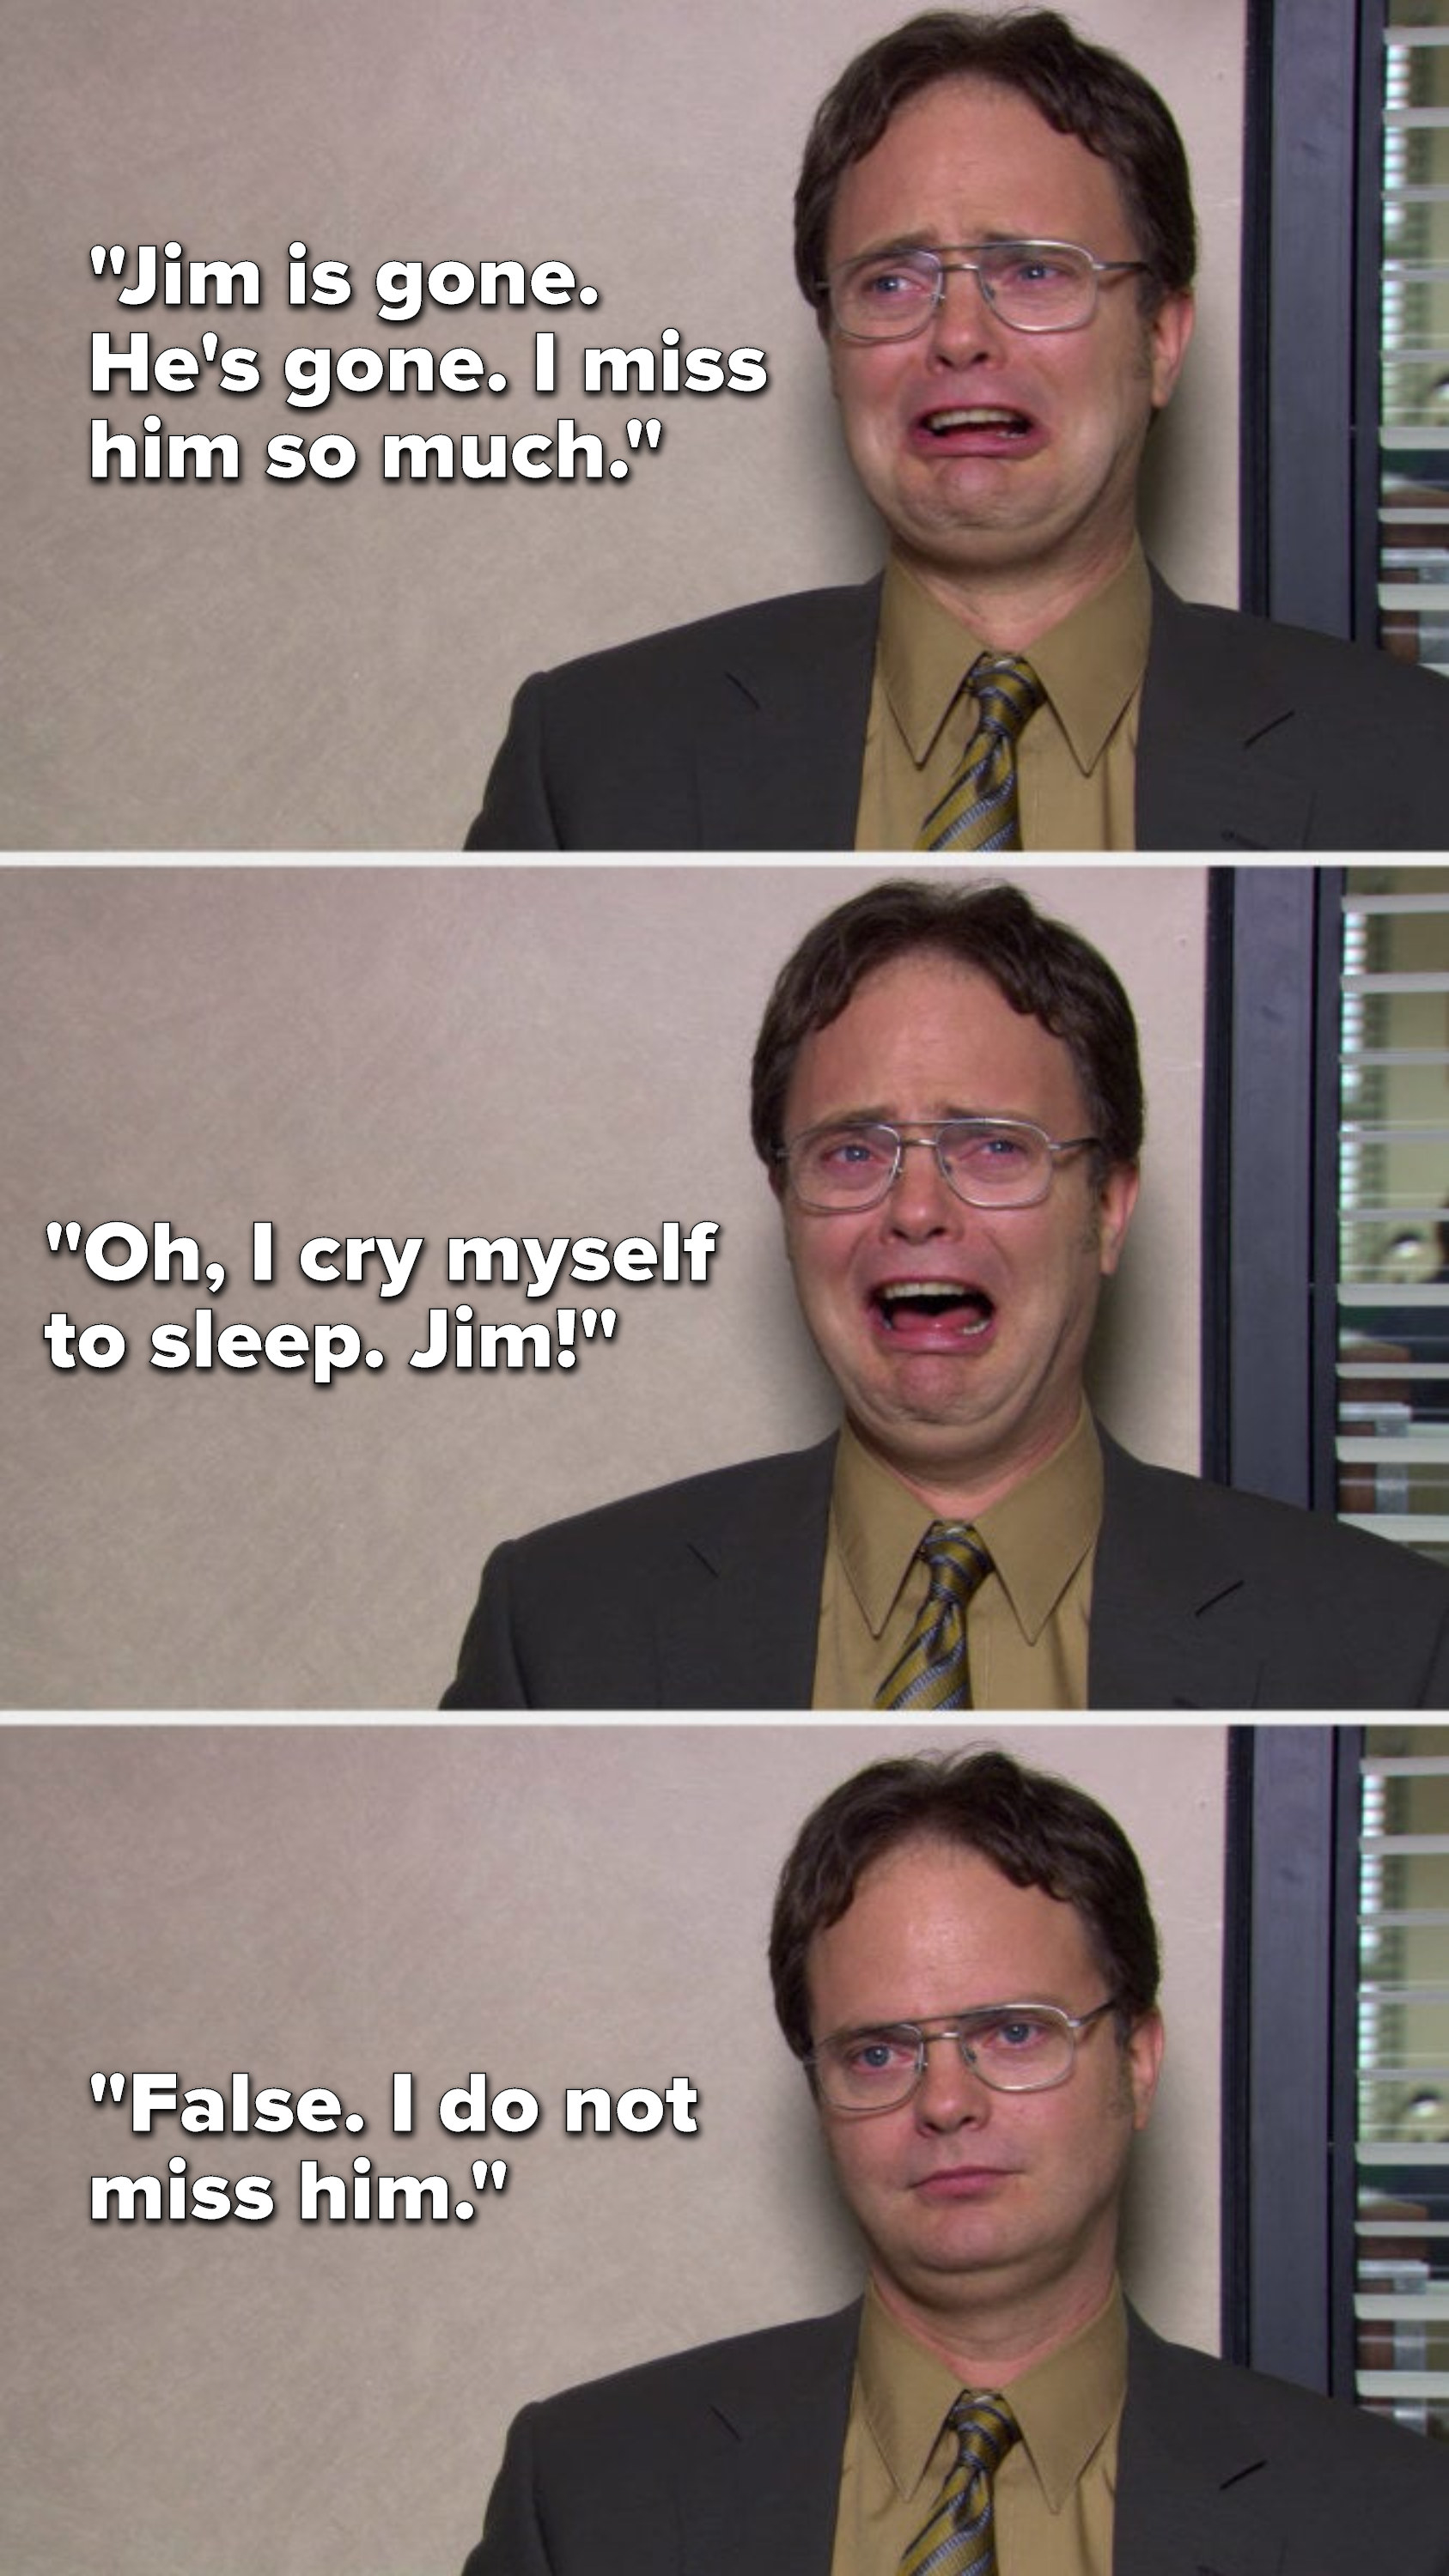 """Dwight cries, """"Jim is gone, he's gone, I miss him so much, oh, I cry myself to sleep, Jim"""" then he stops pretending to cry and says, """"False, I do not miss him"""""""